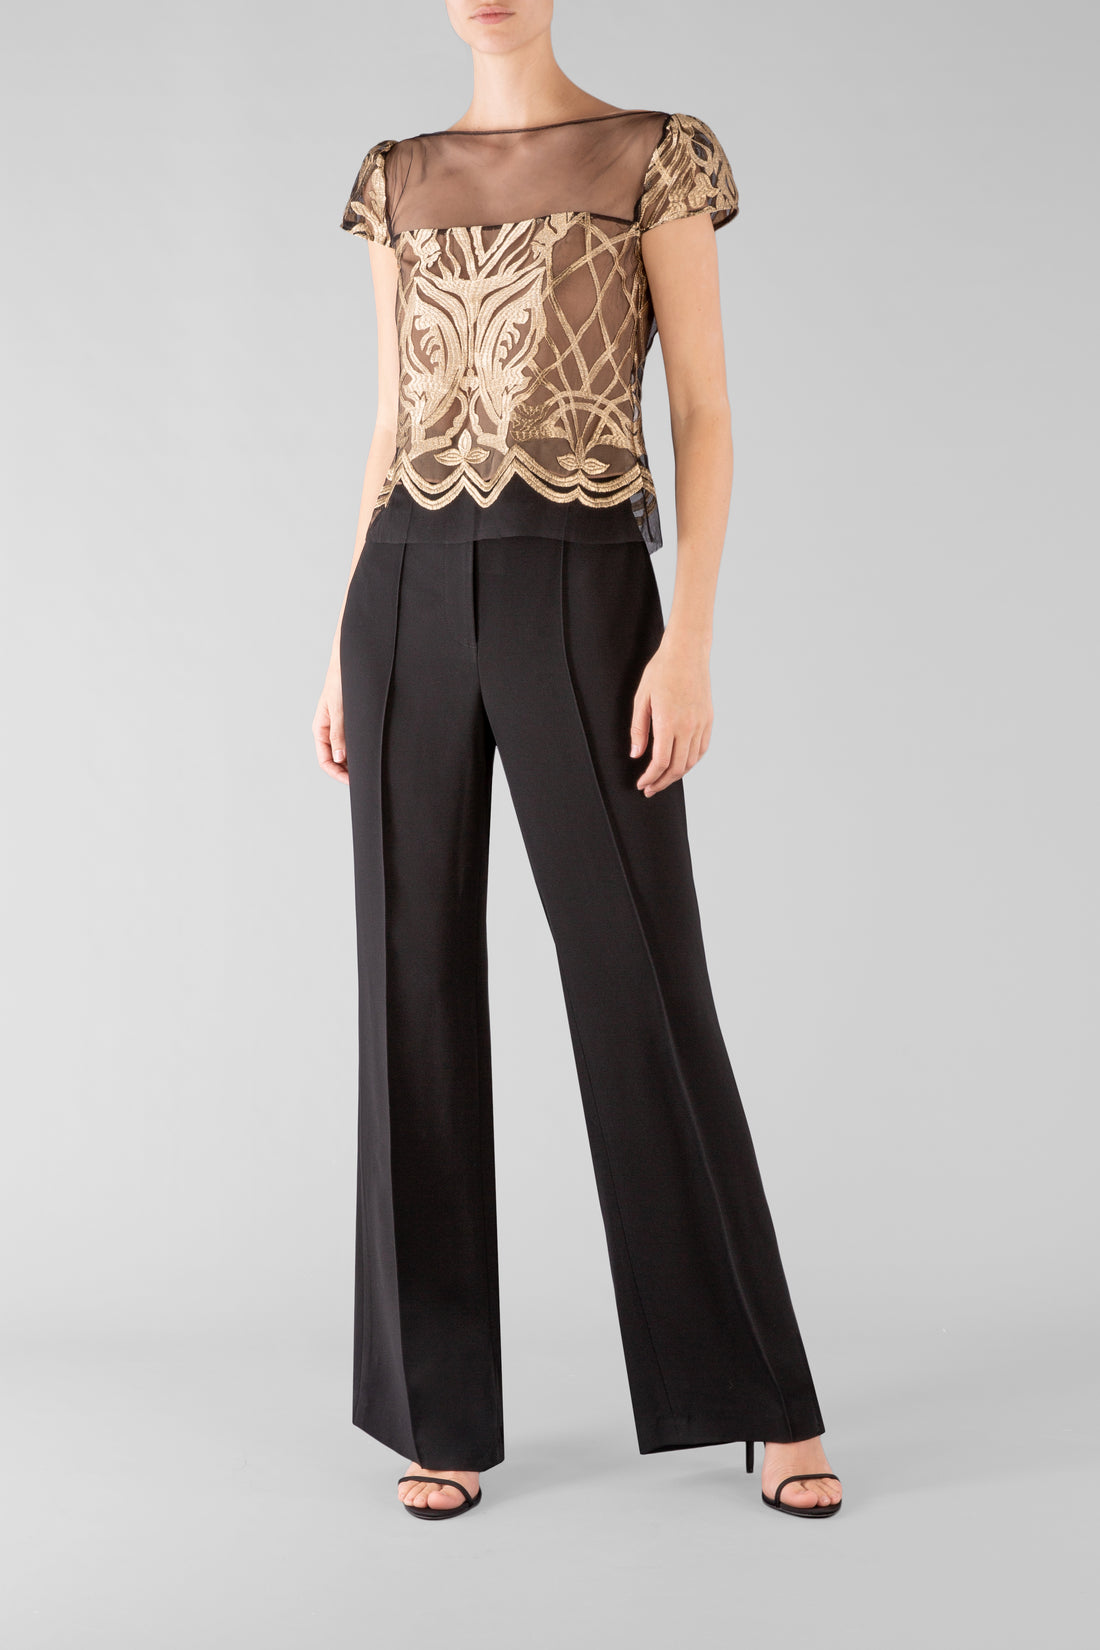 THE WIDE LEG AND WONDERFUL PANT